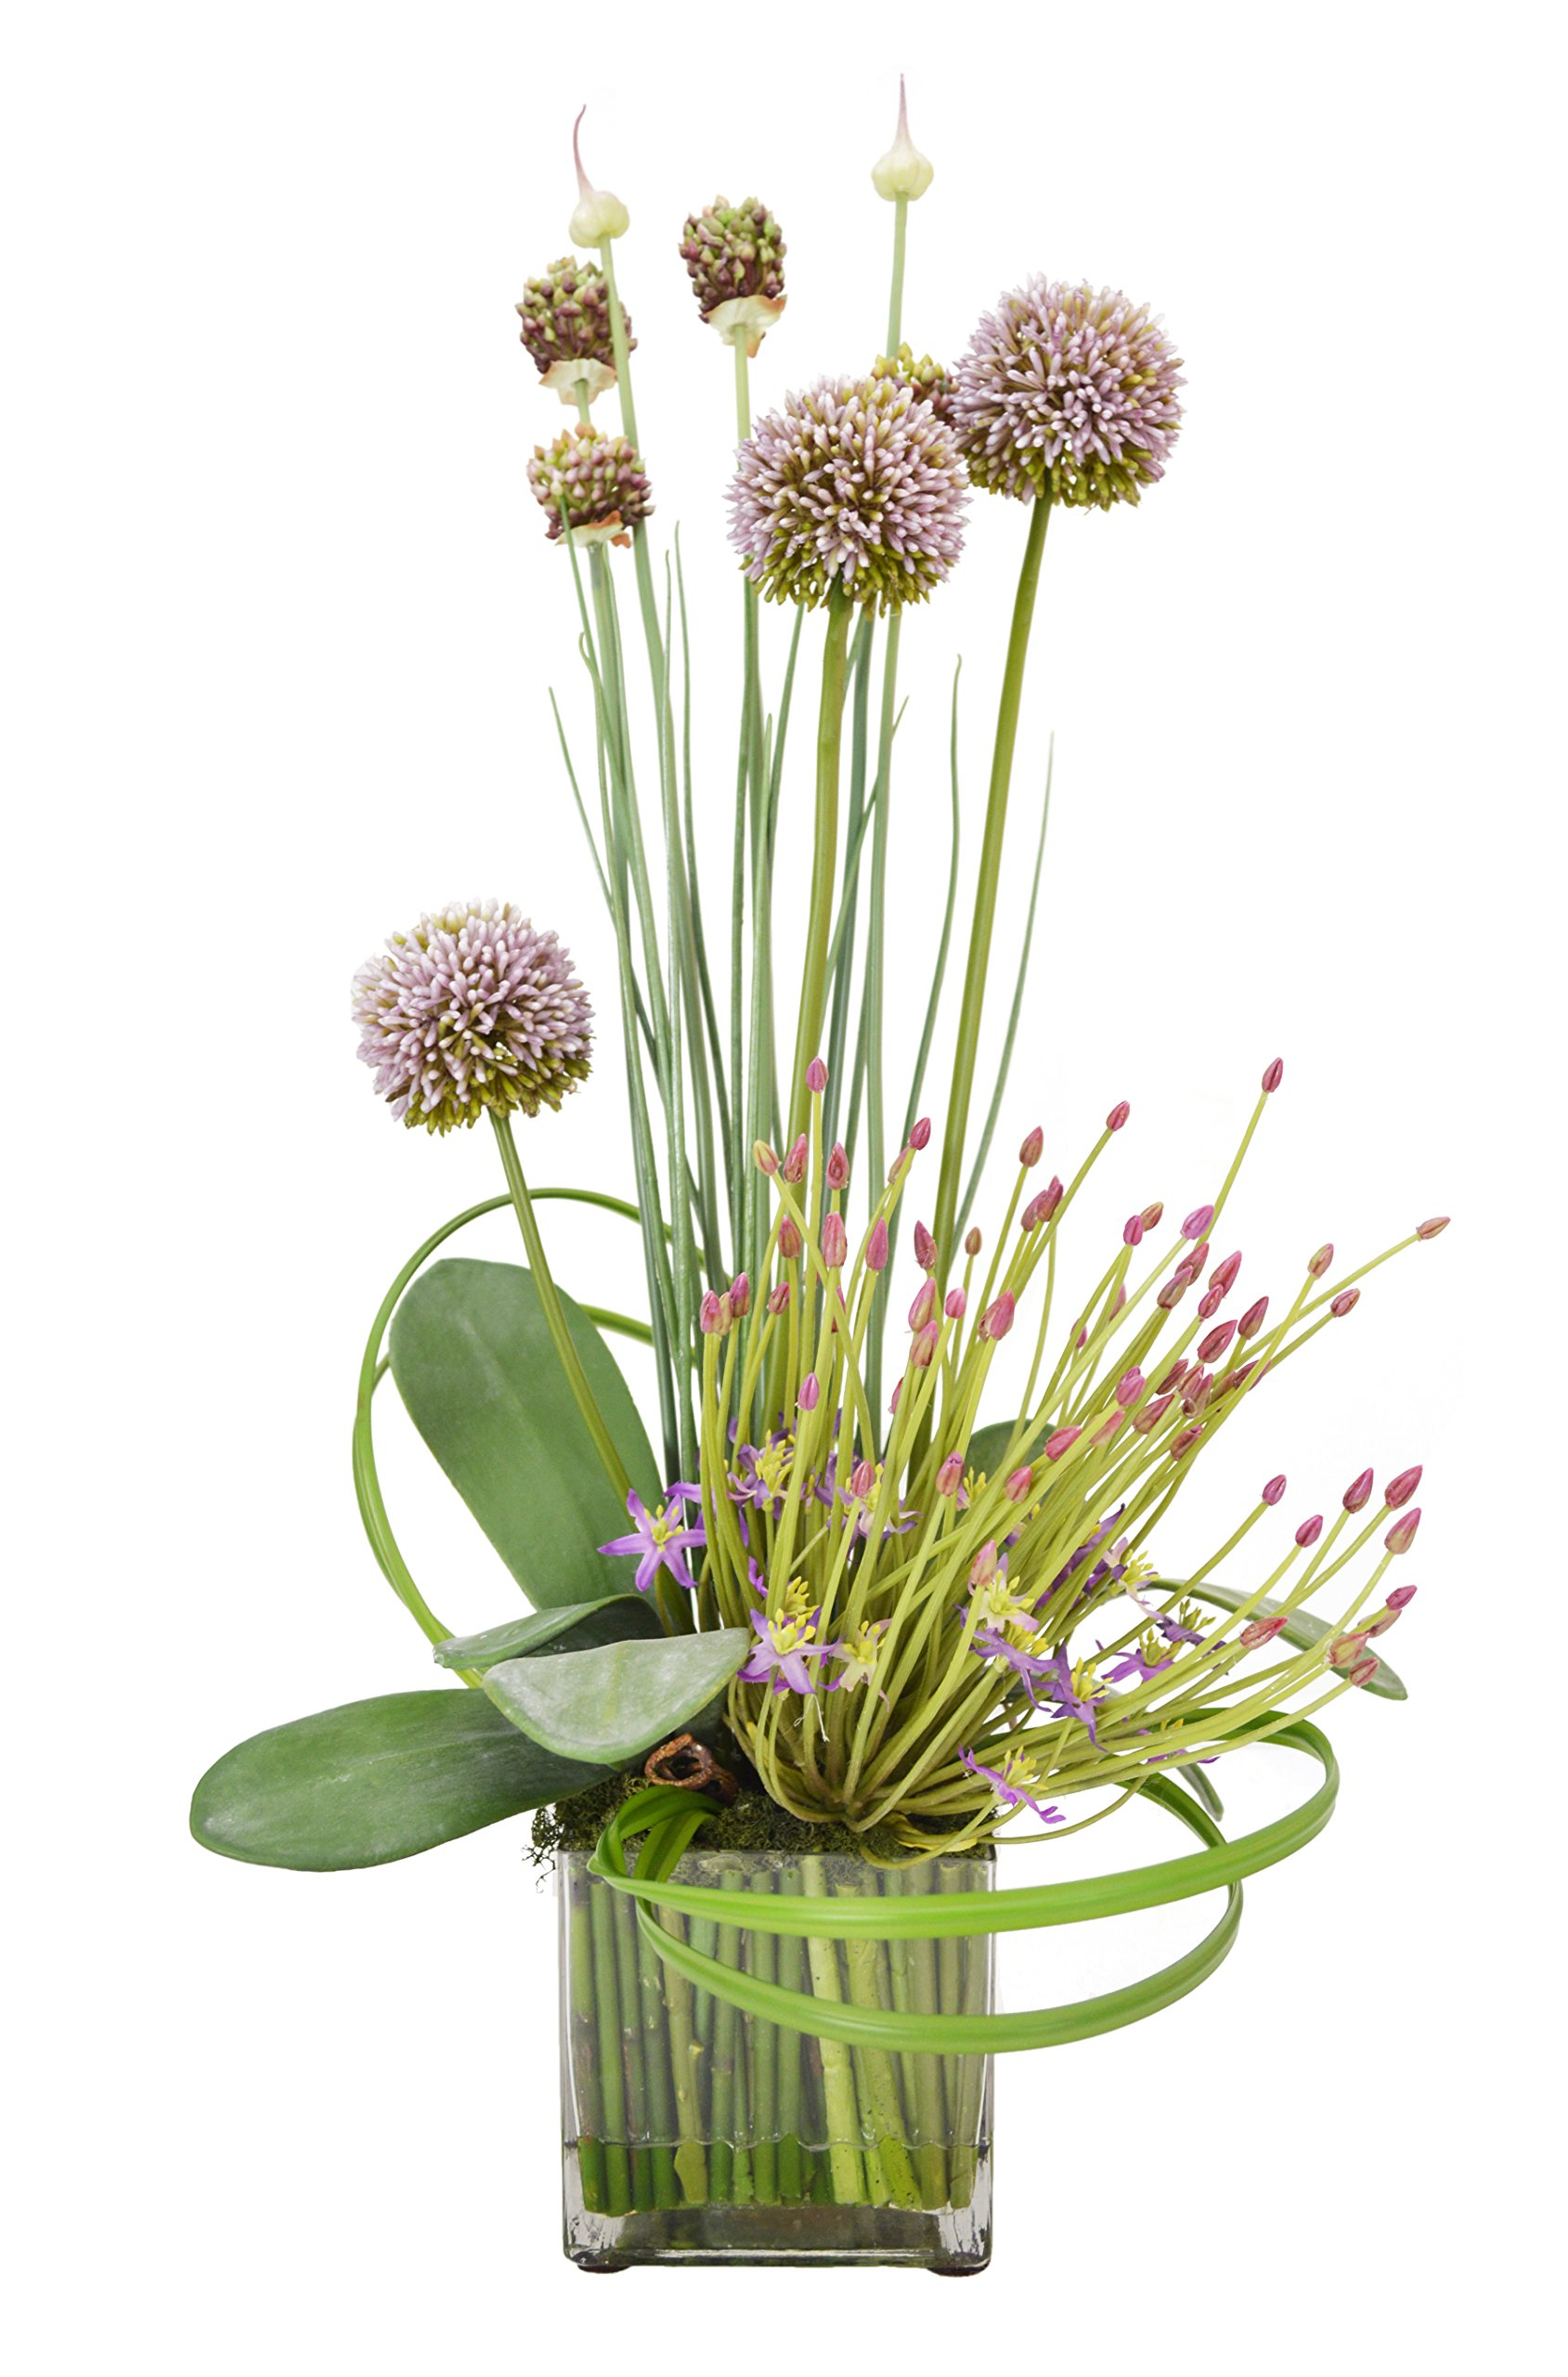 Creative-Displays-Mauve-Thistle-with-Budding-Lavender-Allium-in-Square-Vase-Accented-with-Green-Sticks-in-Acrylic-Water